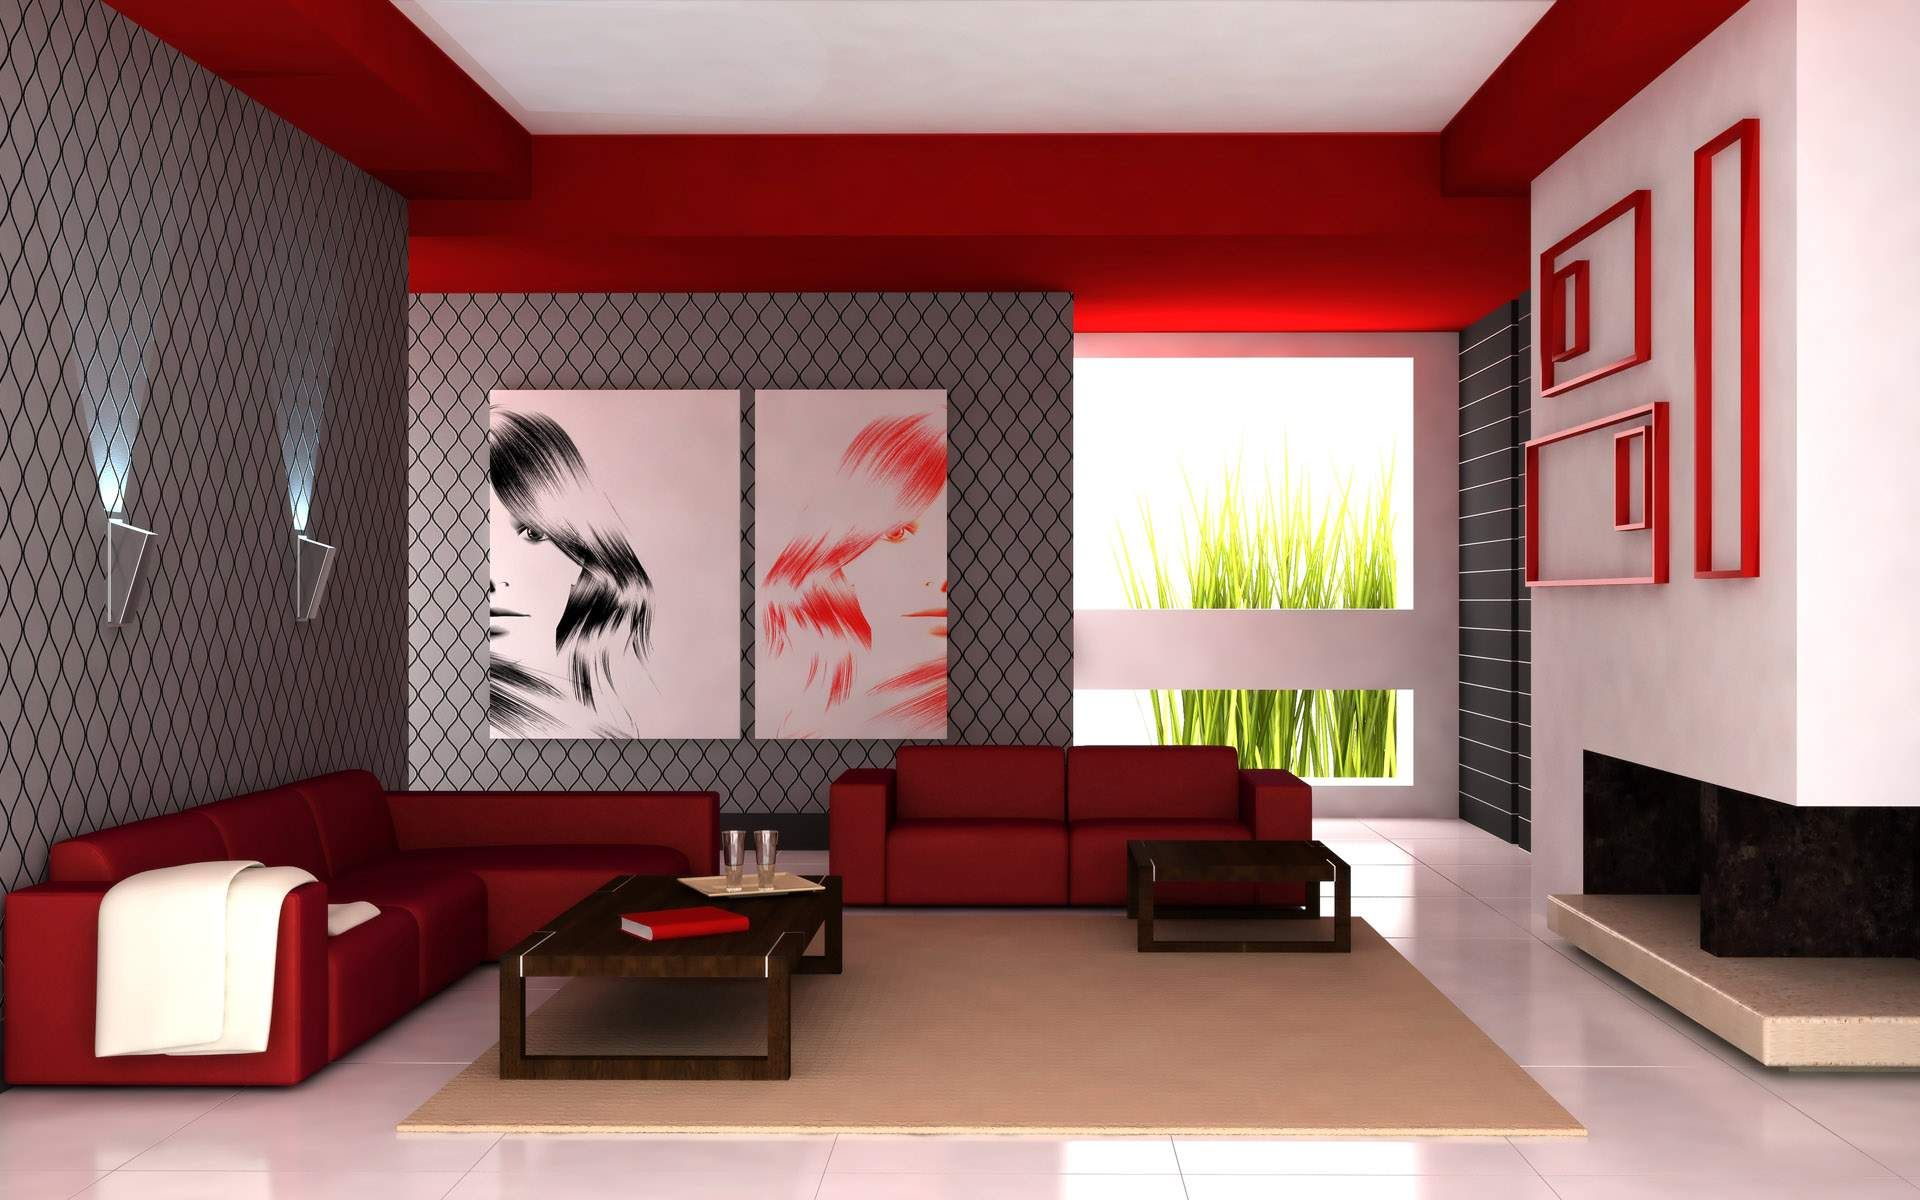 Captivating Cool Living Room Interior With Flashy Red Color   Stylendesigns.com!